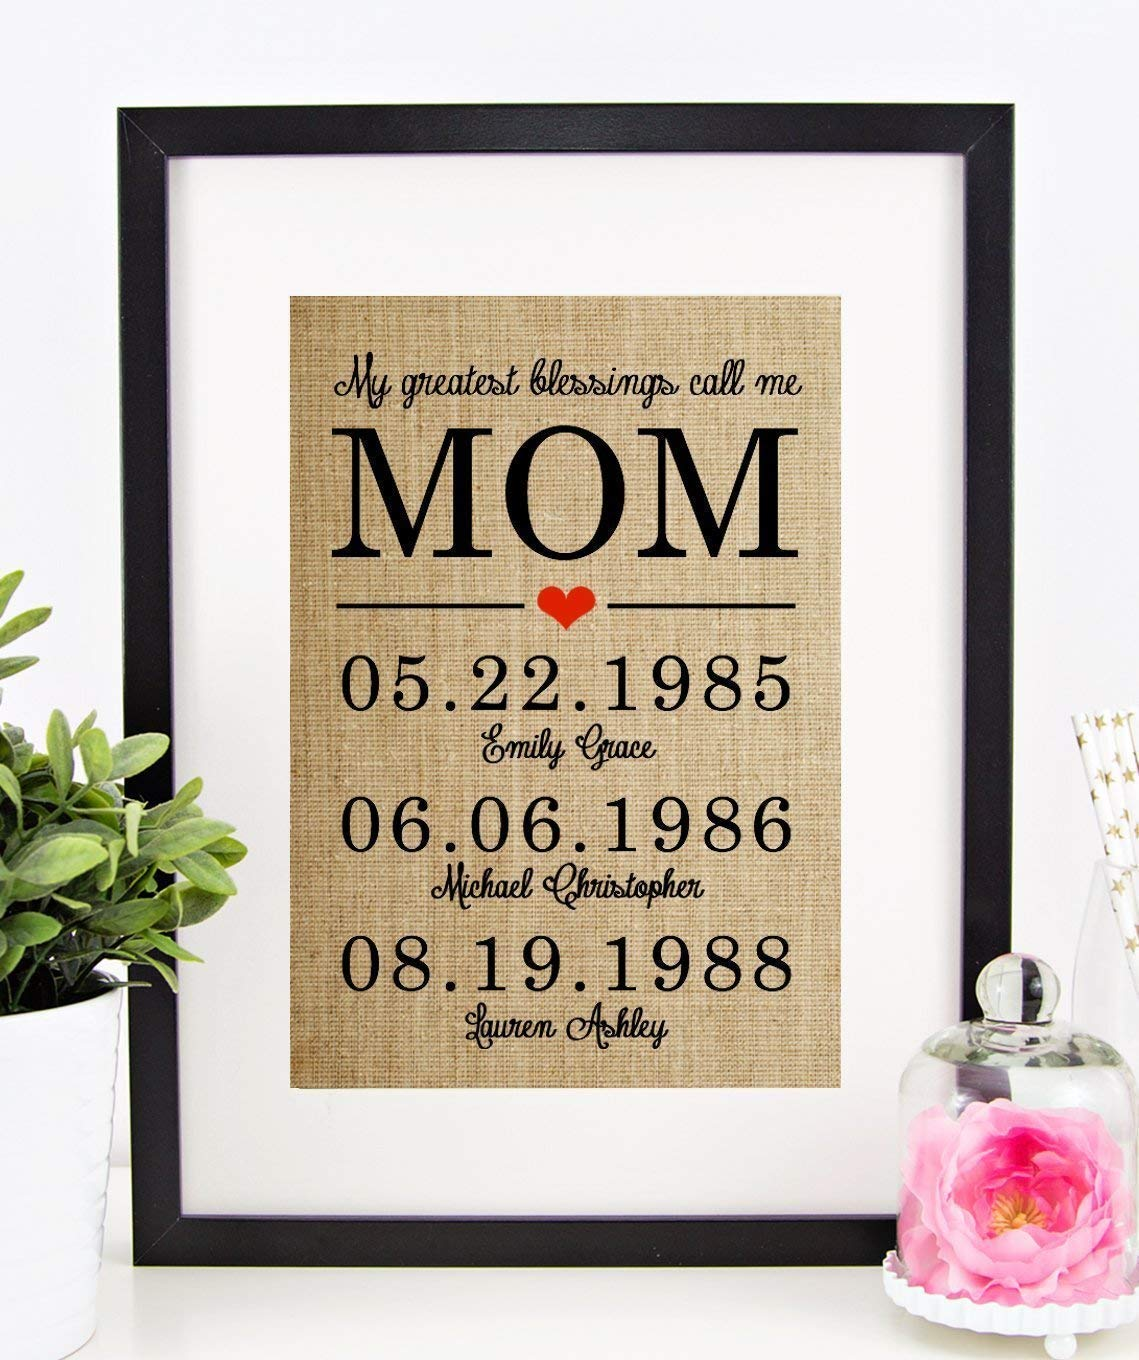 Christmas Gifts For Mom From Daughter.Personalized Christmas Gifts For Mom Mother Daughter Gifts Birthday Anniversary My Greatest Blessings Call Me Mom Burlap Print Mom Can Be